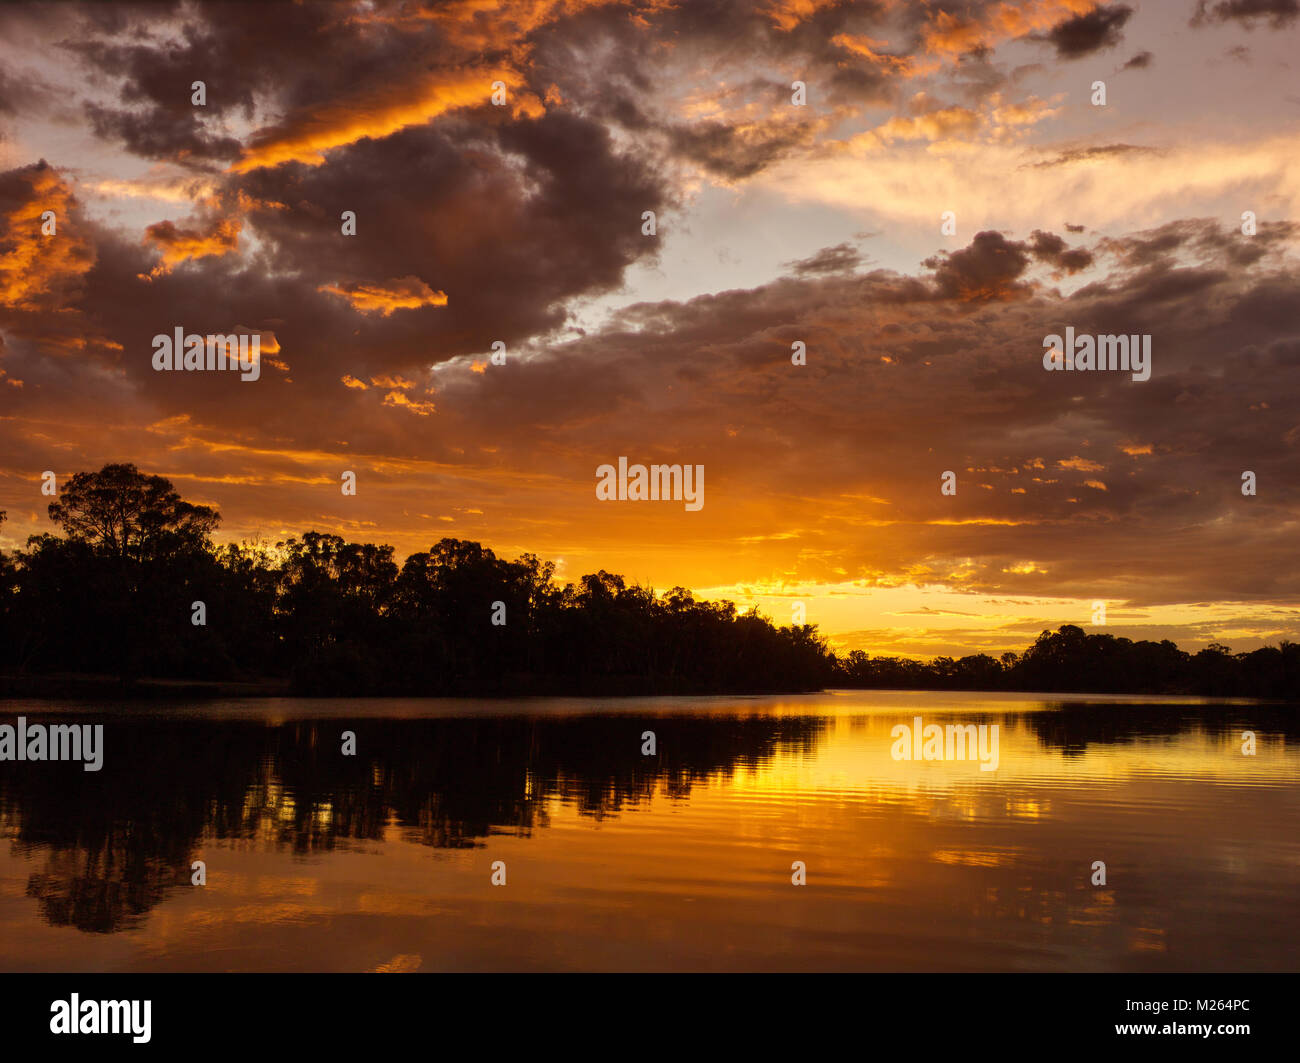 End of a hot dusty Summers day over the Murray River near Curlwaa, NSW, Australia. - Stock Image